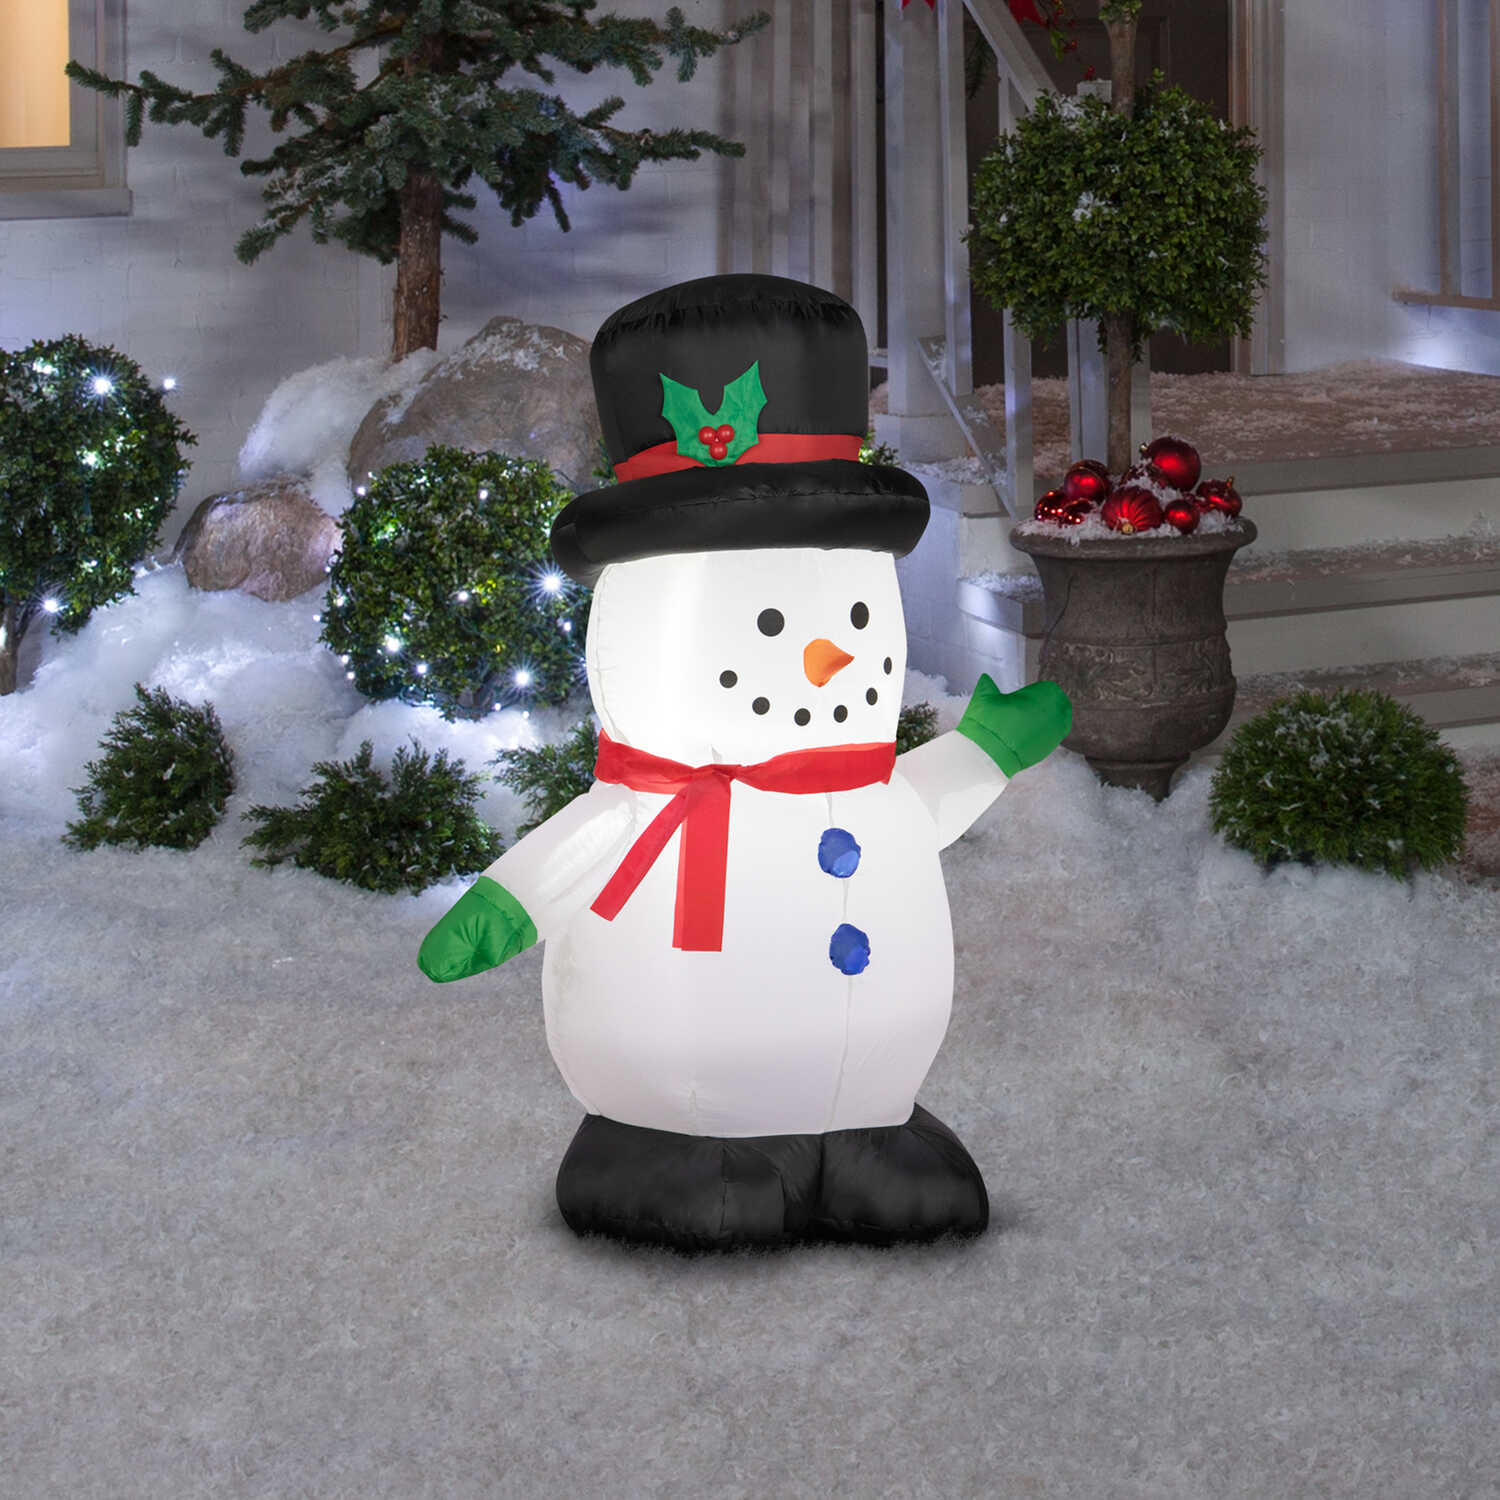 Gemmy  Gemmy  Snowman  Christmas Inflatable  White  Polyester  42.13 in. 1 pk